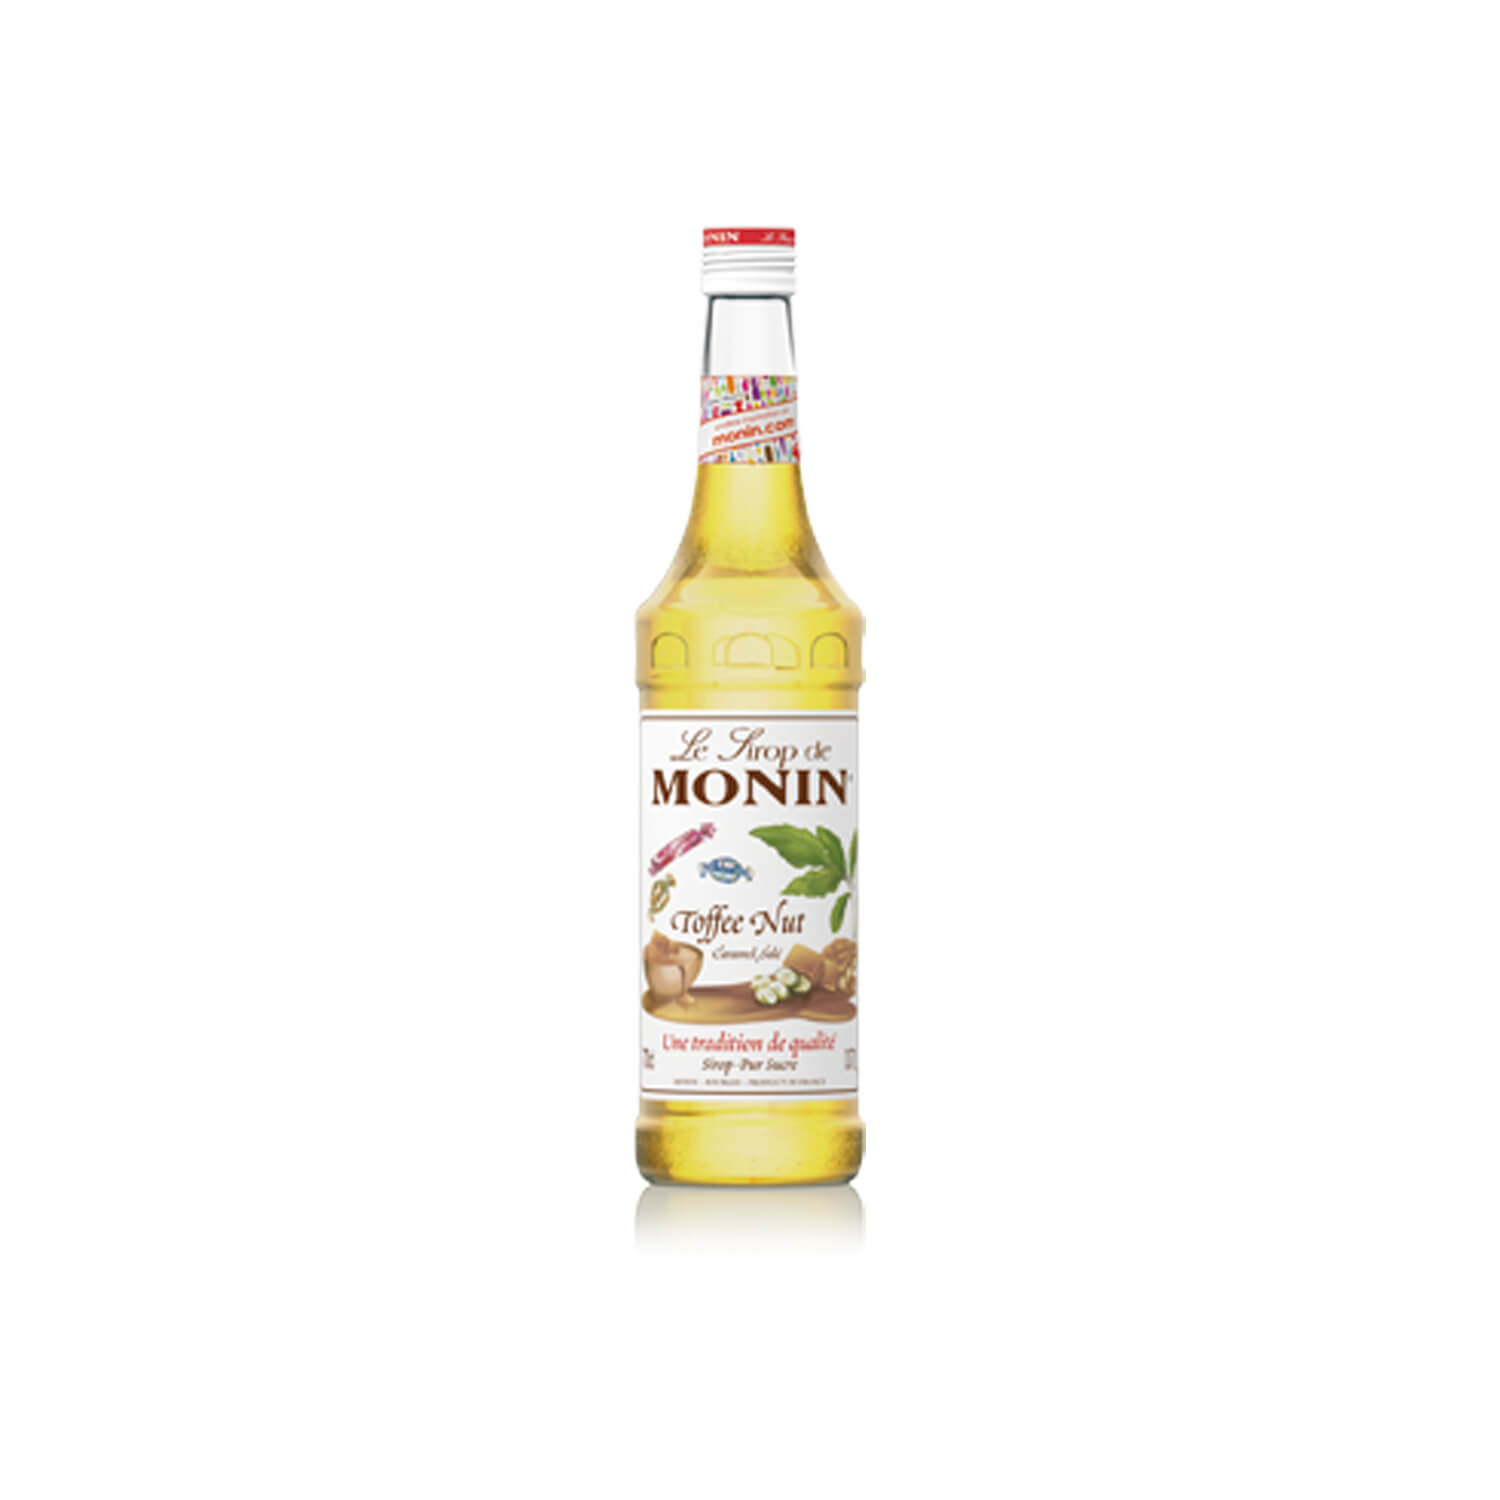 Monin - Siroop - Tofee Nut - 700 Ml